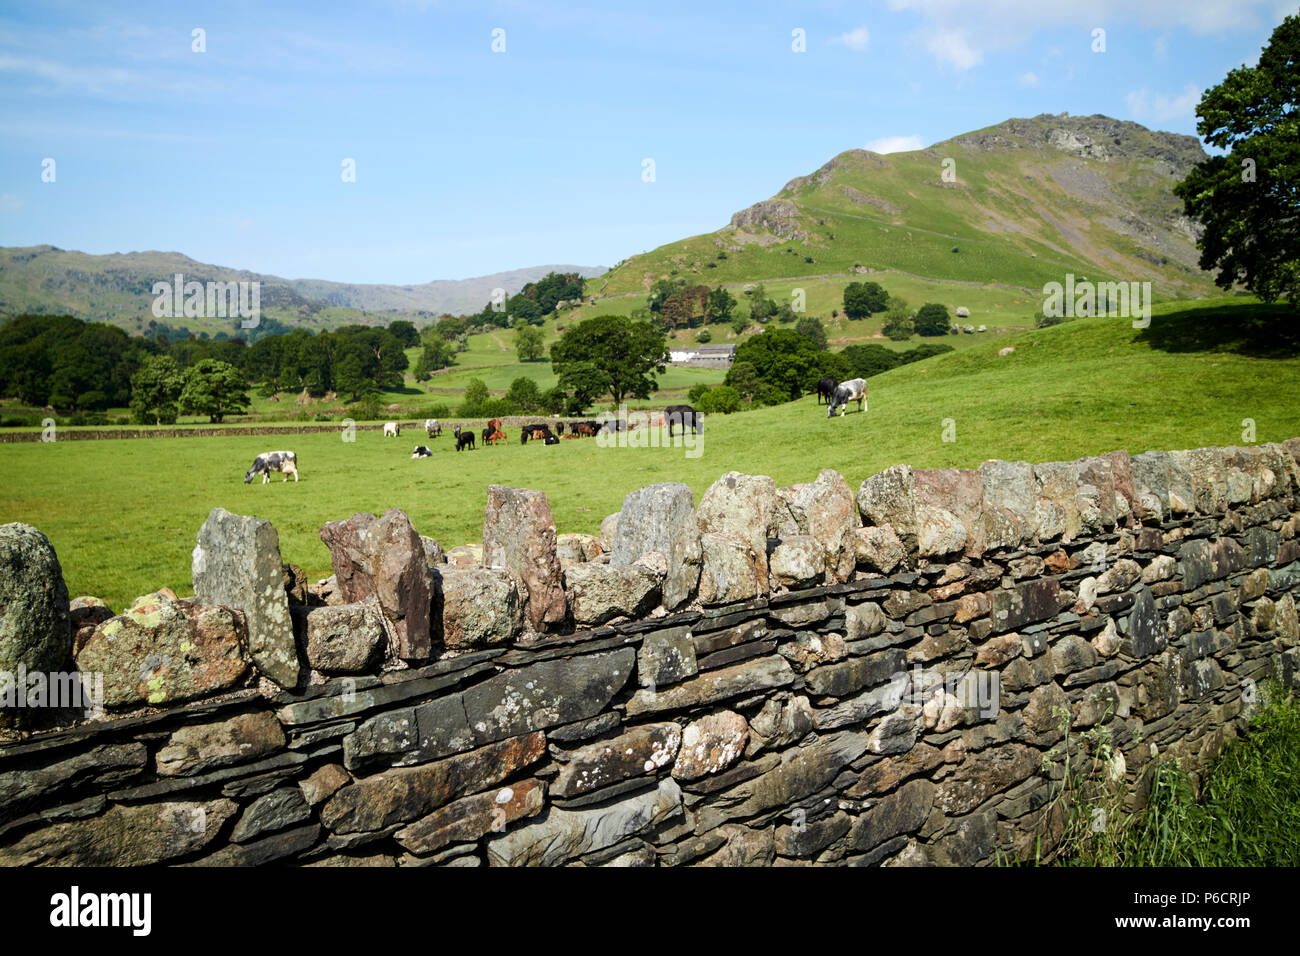 lakeland stone slate dry stone wall with fields and hills near grasmere in the lake district cumbria england uk - Stock Image